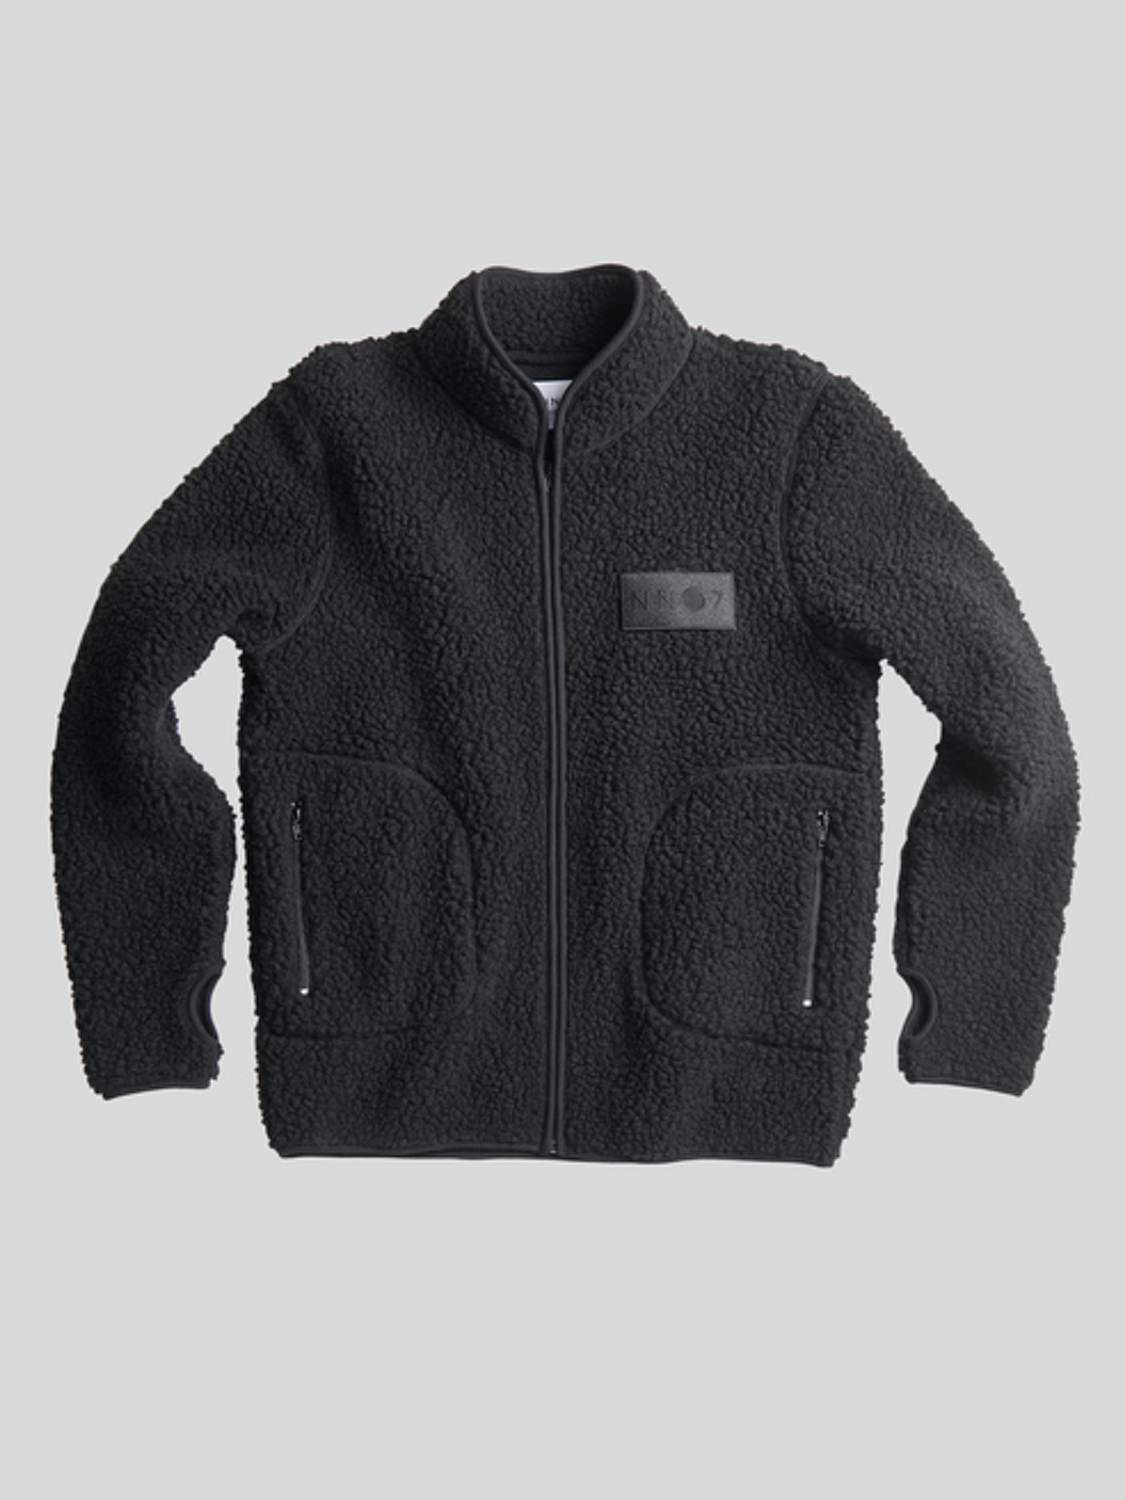 NN07 - MORT 3443 FLEECE JAKKE BLACK | GATE 36 Hobro